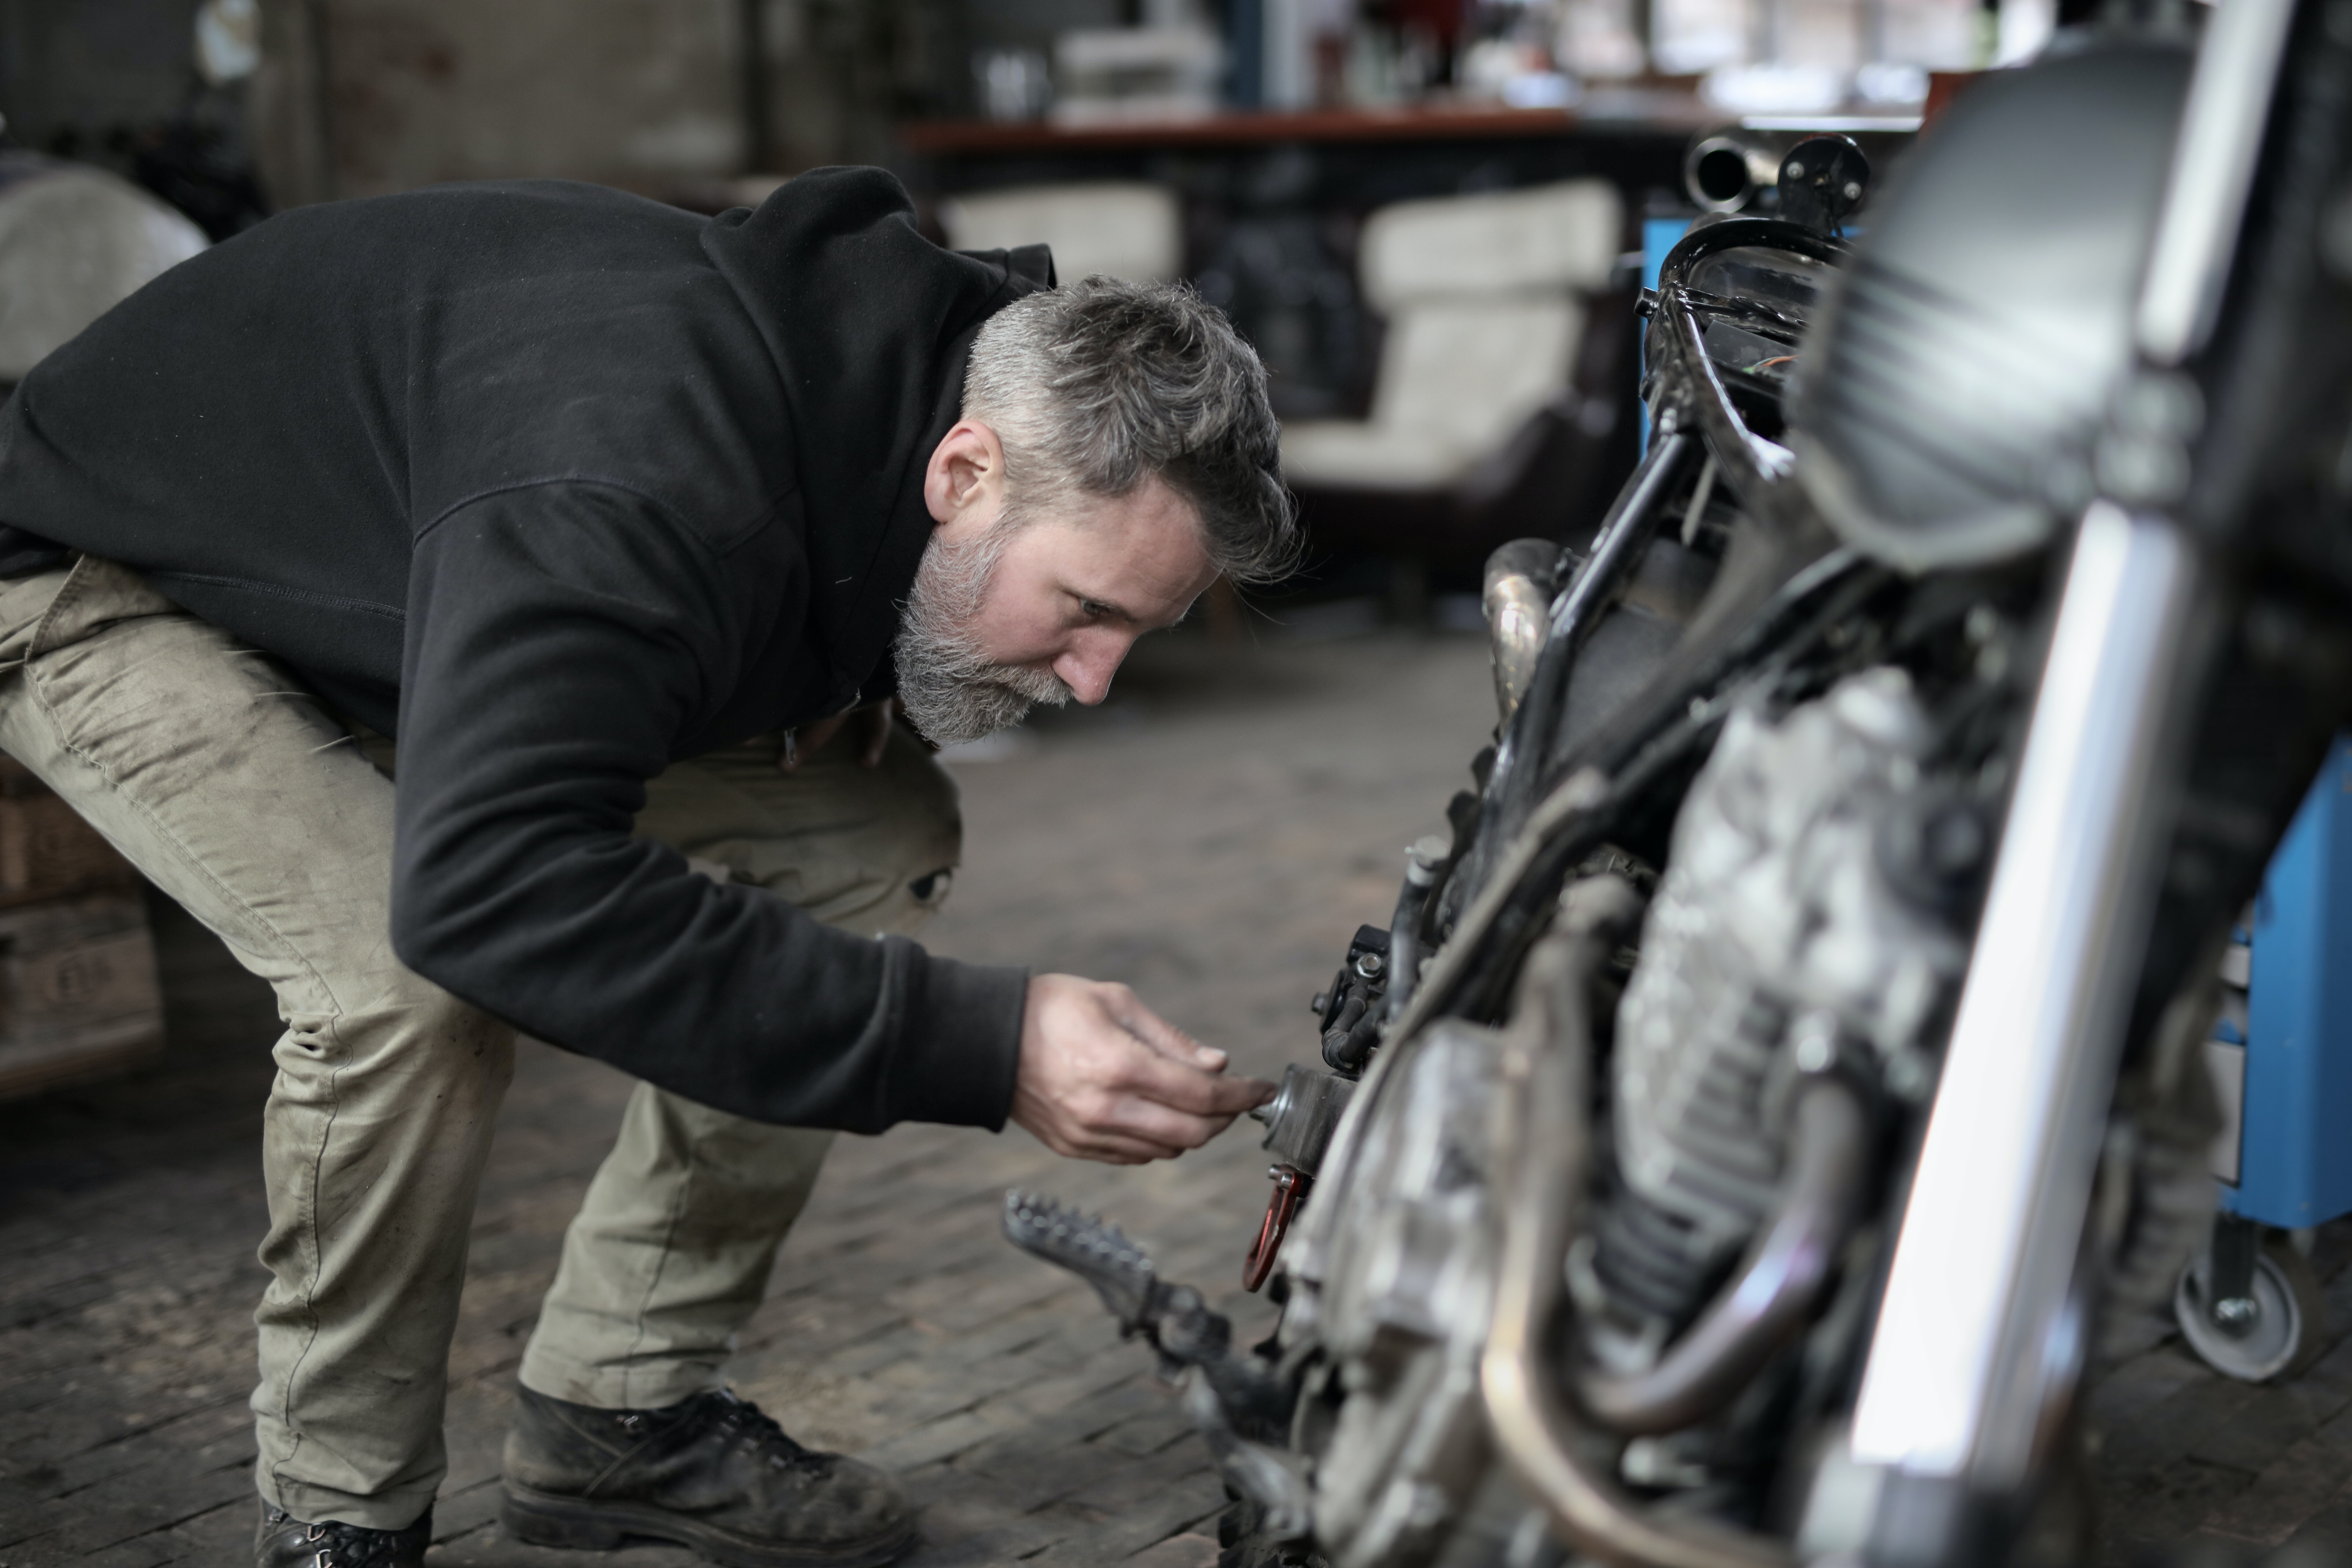 How to check your motorcycle is safe after lockdown